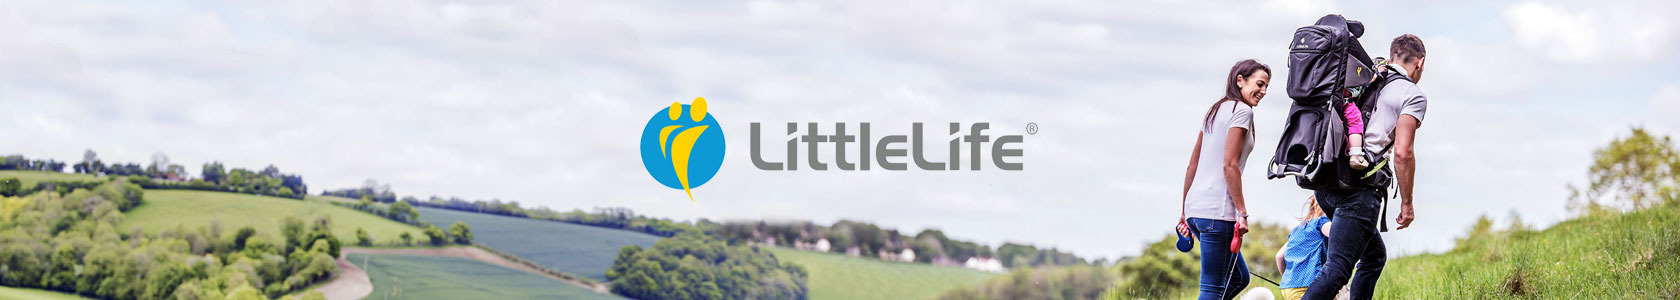 A man is carrying one child  in a LittleLife carrier on his back while another child is holding his hand and a woman is holding dog's lead, walking through fields on a cloudy day, with the littlelife logo in the center.